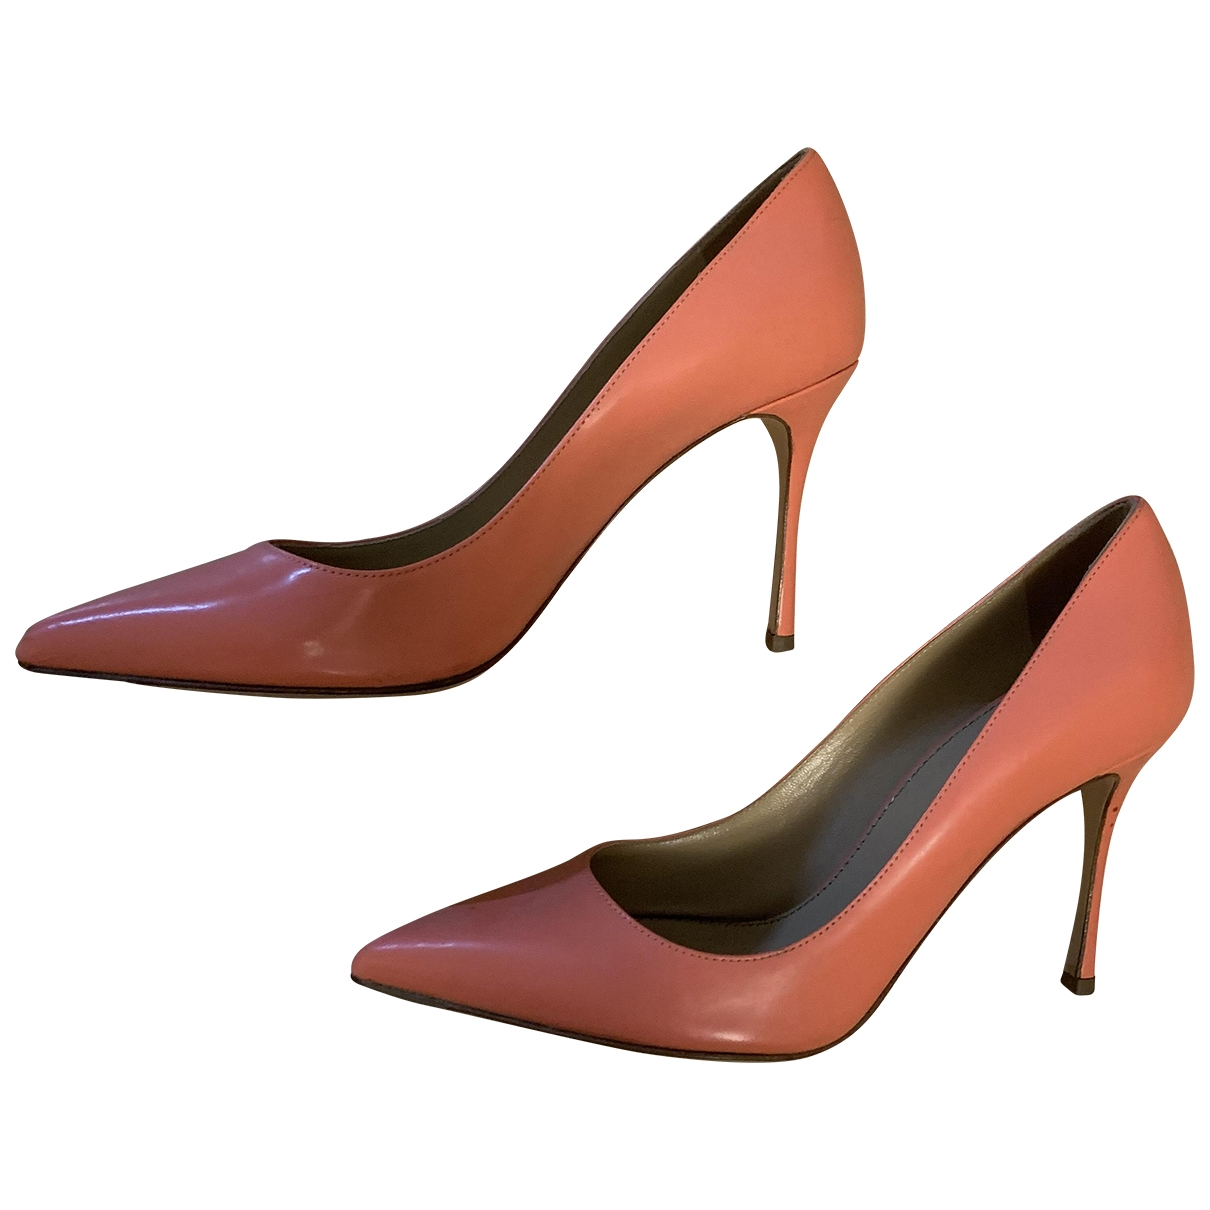 Sergio Rossi \N Pink Leather Heels for Women 37 EU